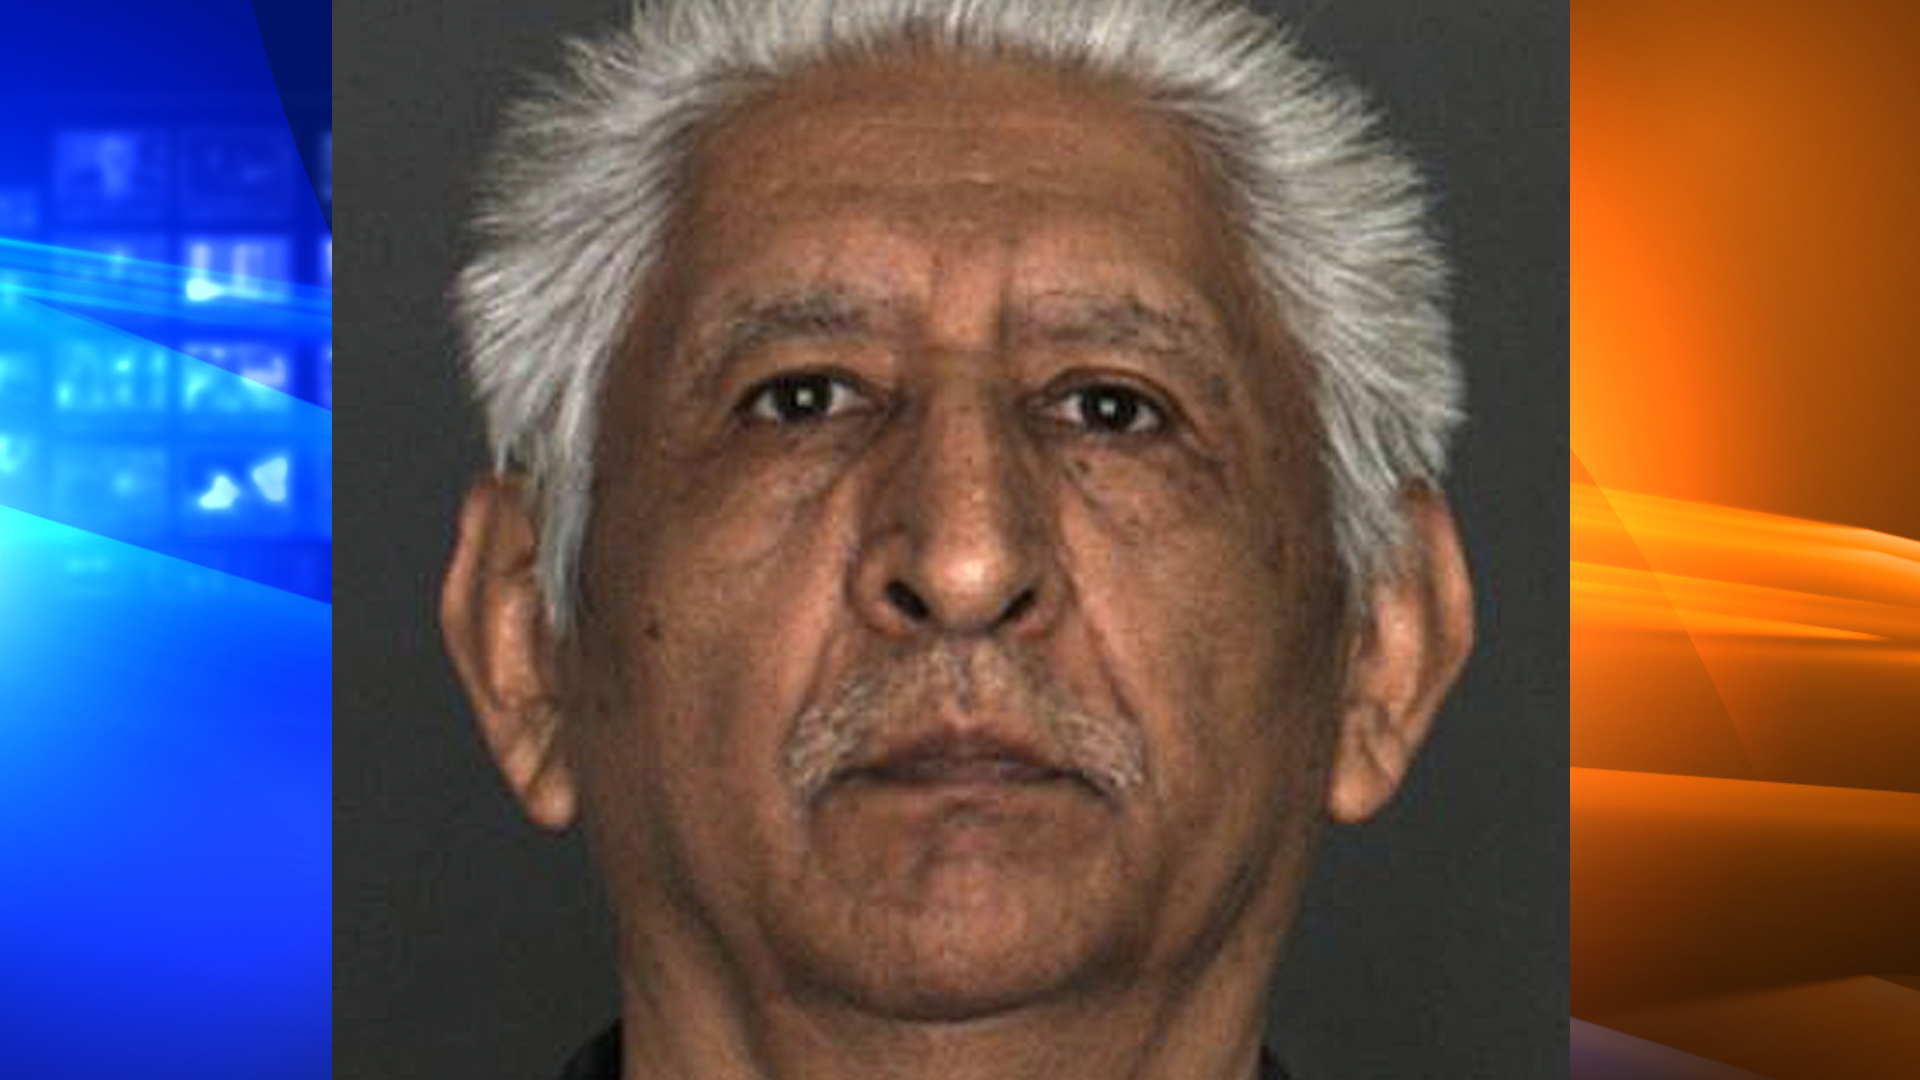 Jose Cuevas is seen in an image provided by the San Bernardino County Sheriff's Department.